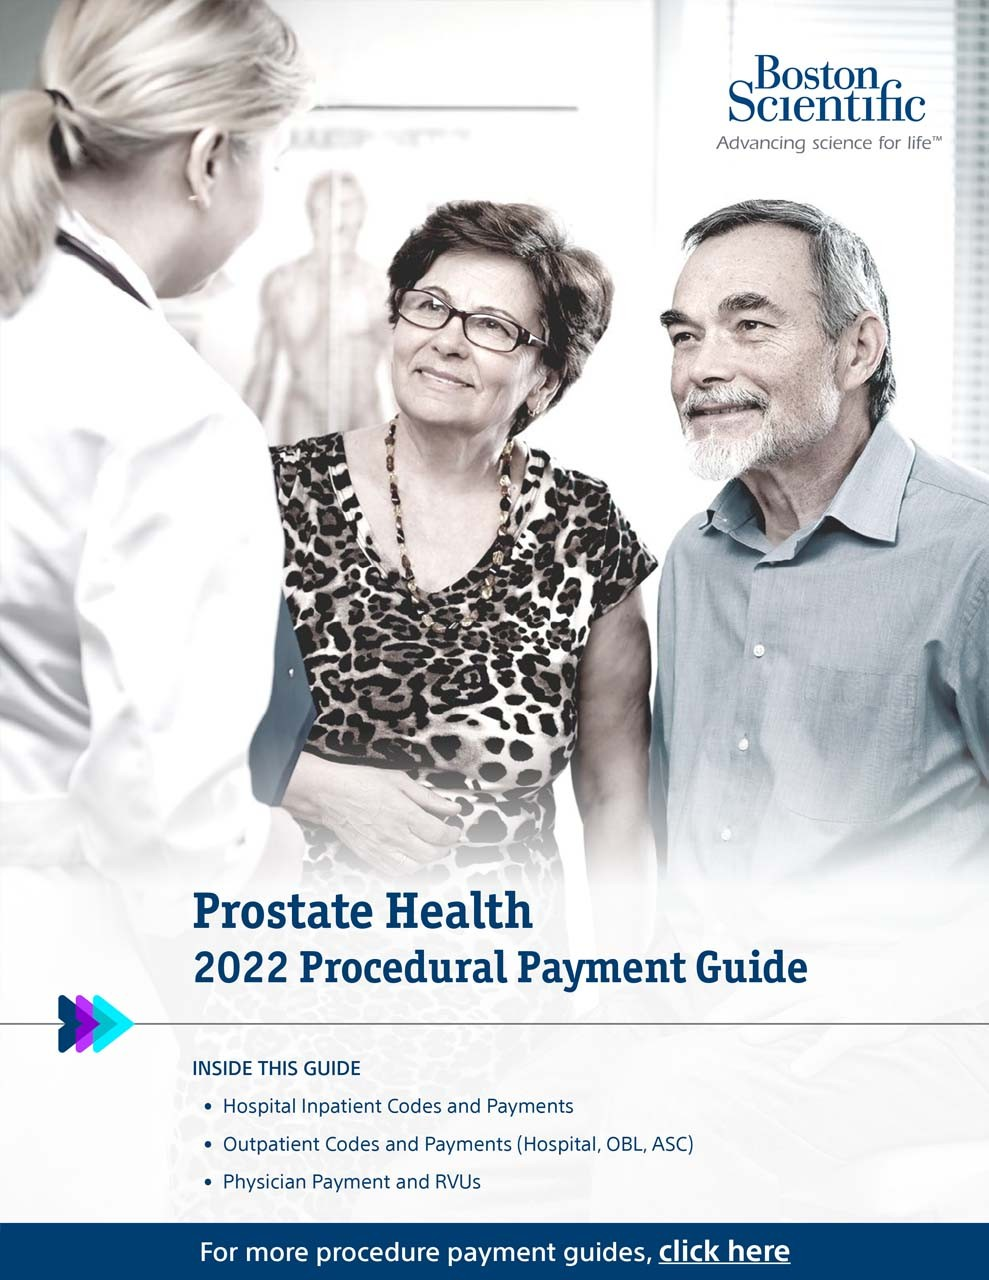 Prostate Health Coding and Payment Guide